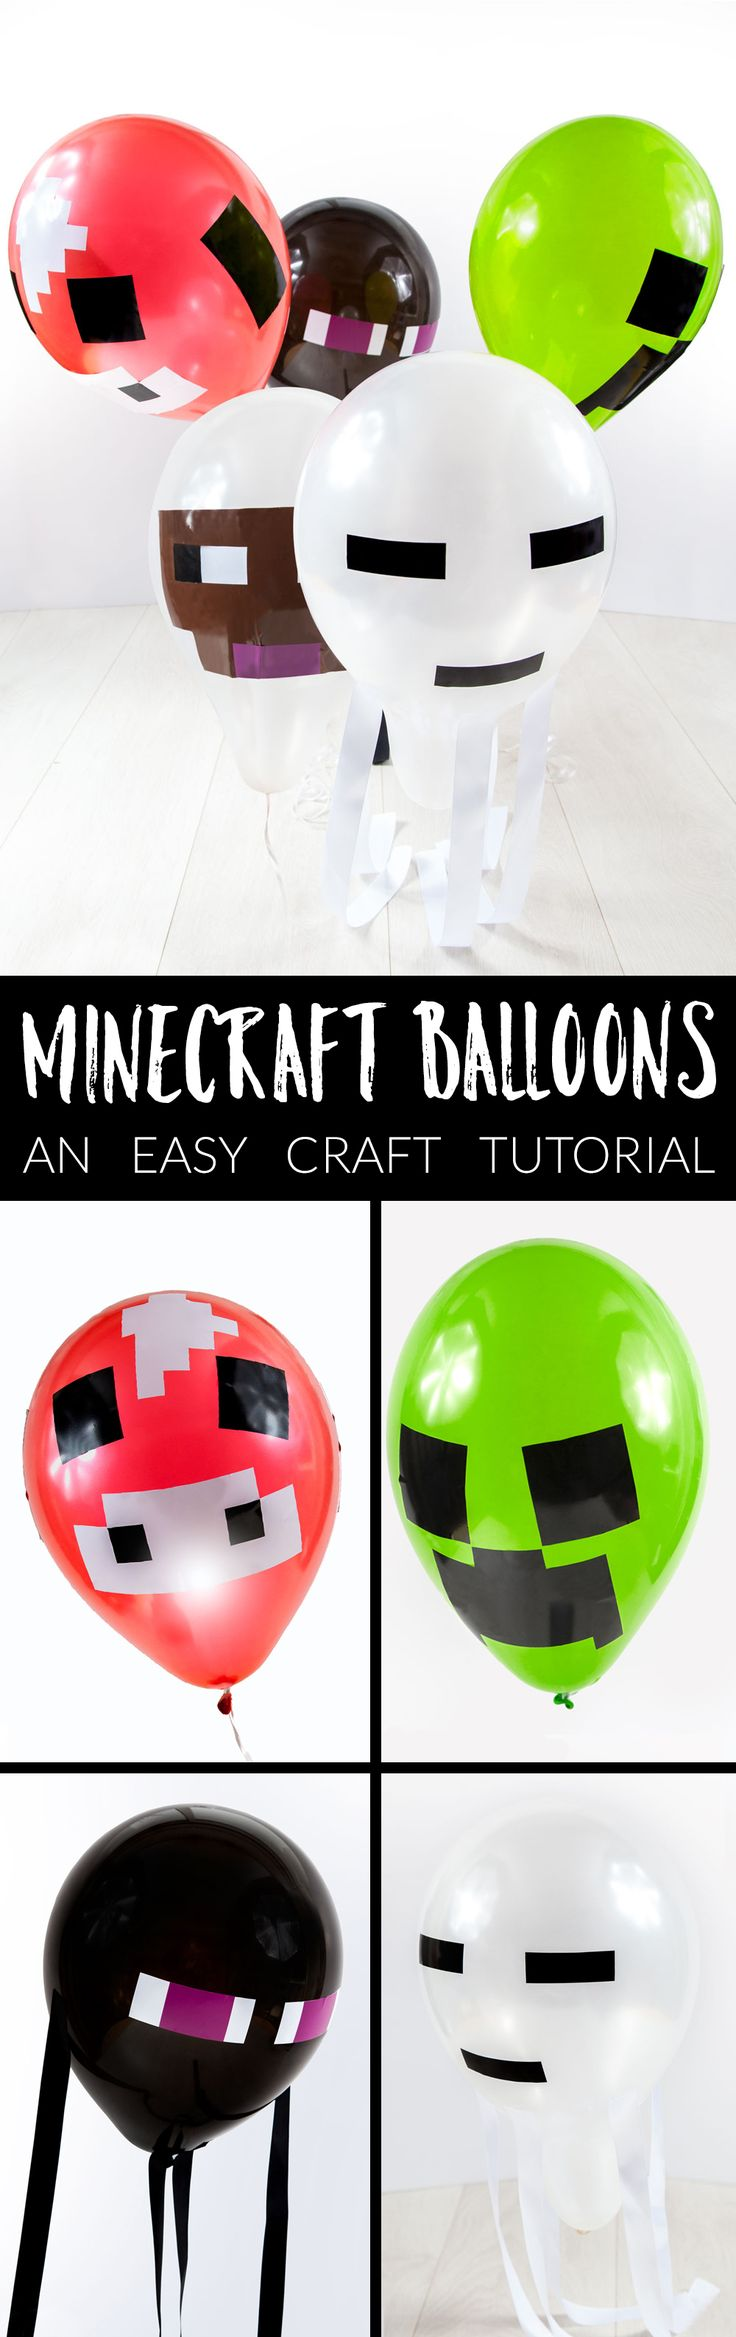 It's so easy to make these brilliant Minecraft balloons. With just a few simple craft materials, you could have mobs floating around your room in no time.